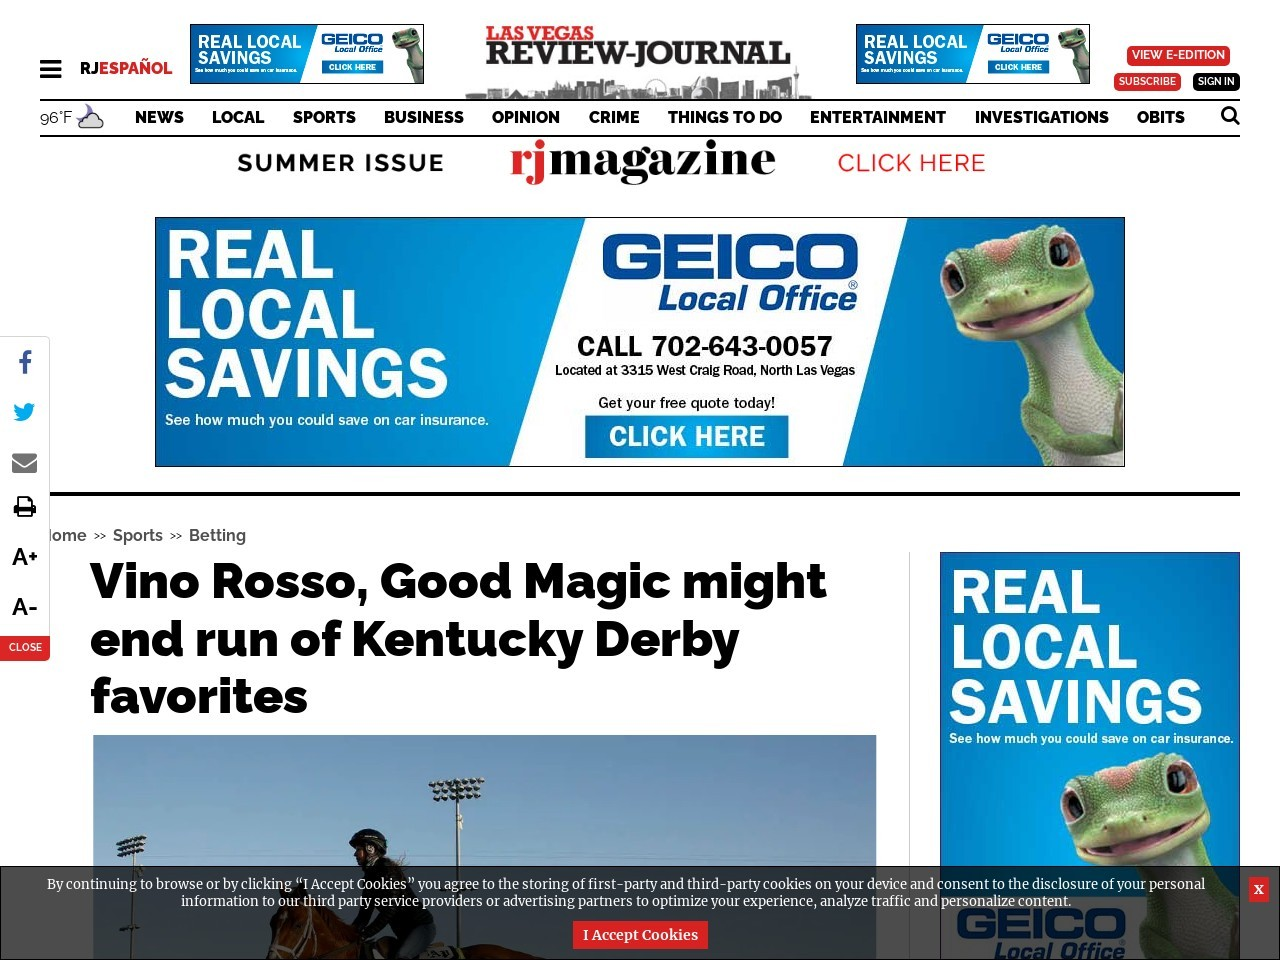 Vino Rosso, Good Magic might end run of Kentucky Derby favorites